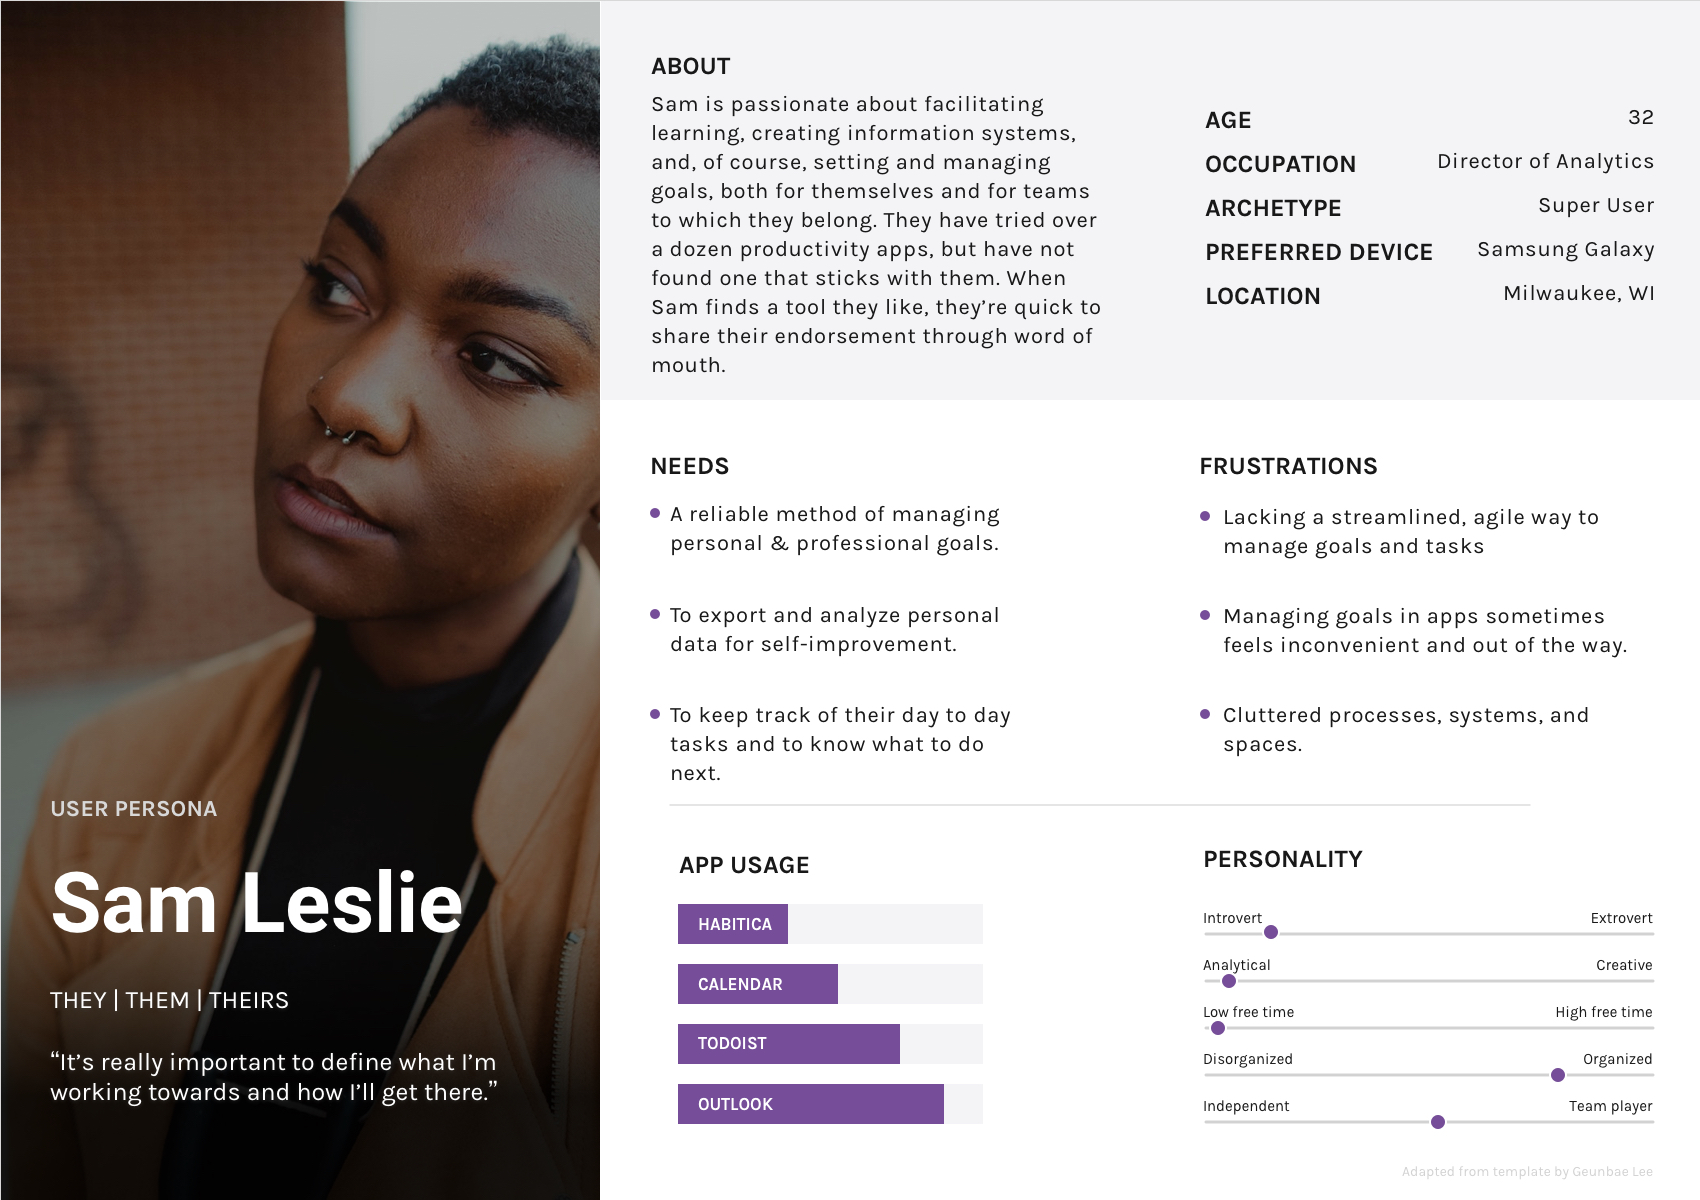 A document showing a person in their 20s and information about their profile, including biography, app usage, personality, and relationship to goal setting.